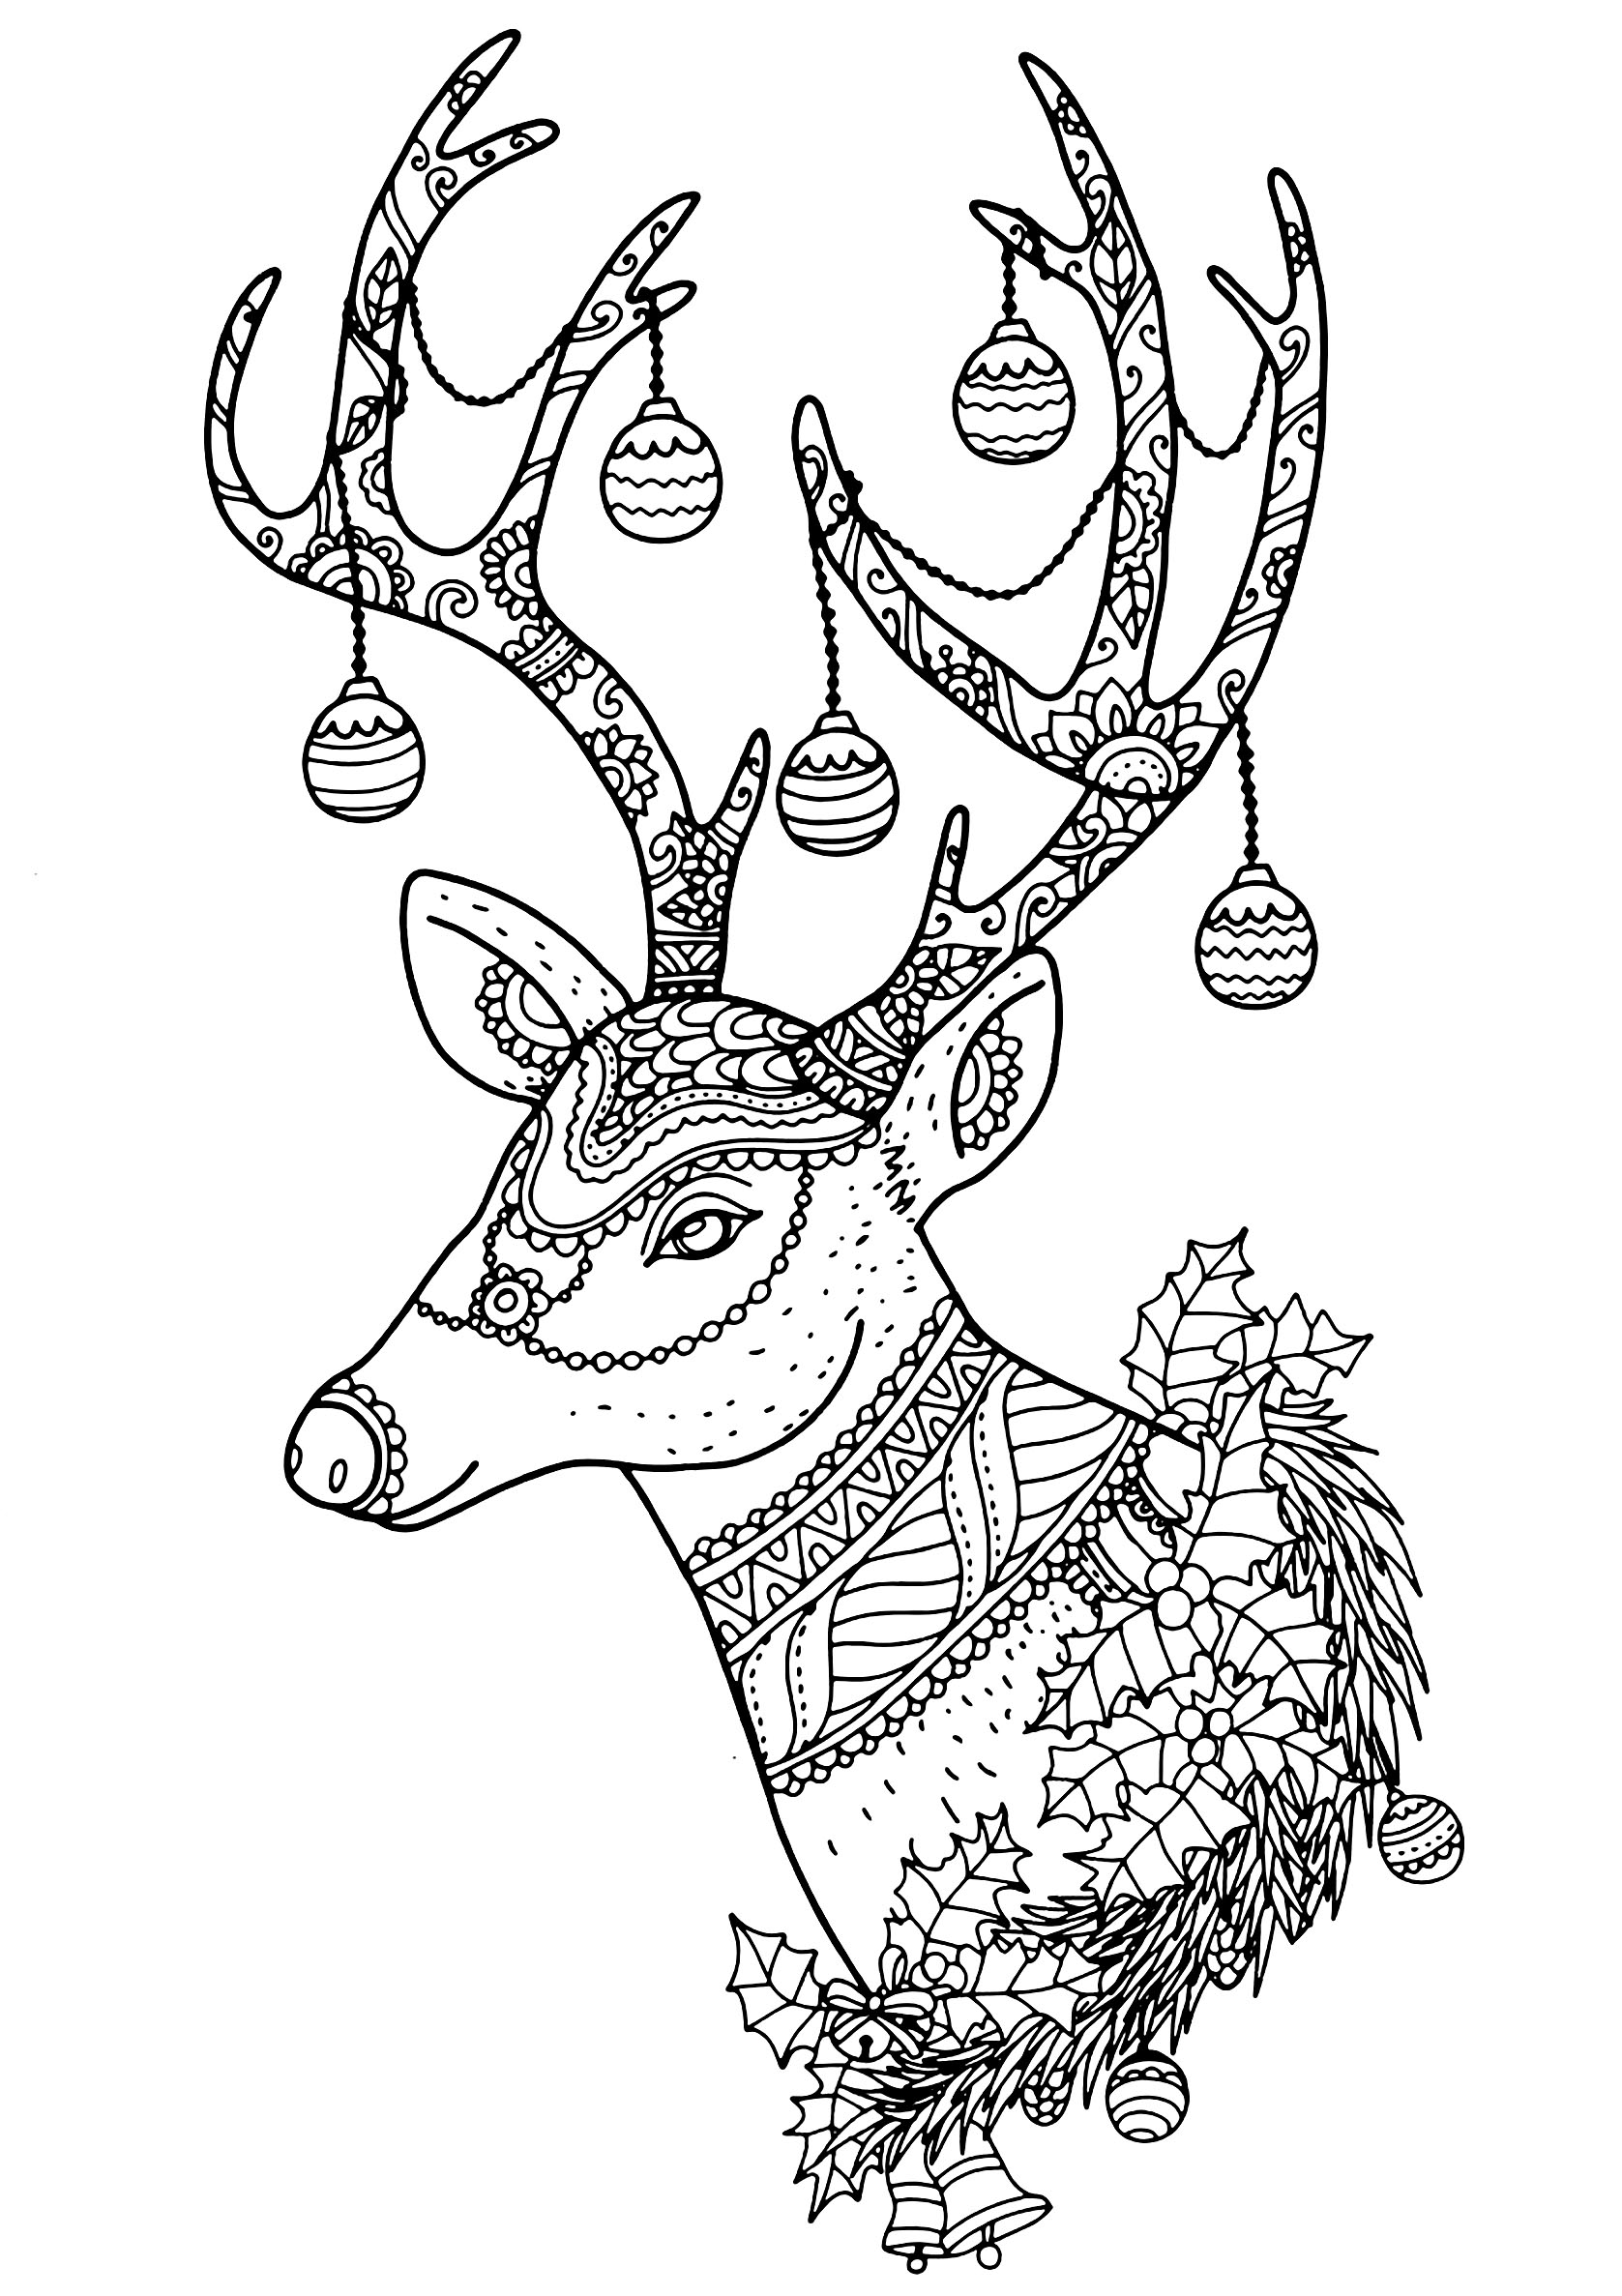 coloring page christmas reindeer nontachai hengtragool christmas reindeer with beautiful patterns